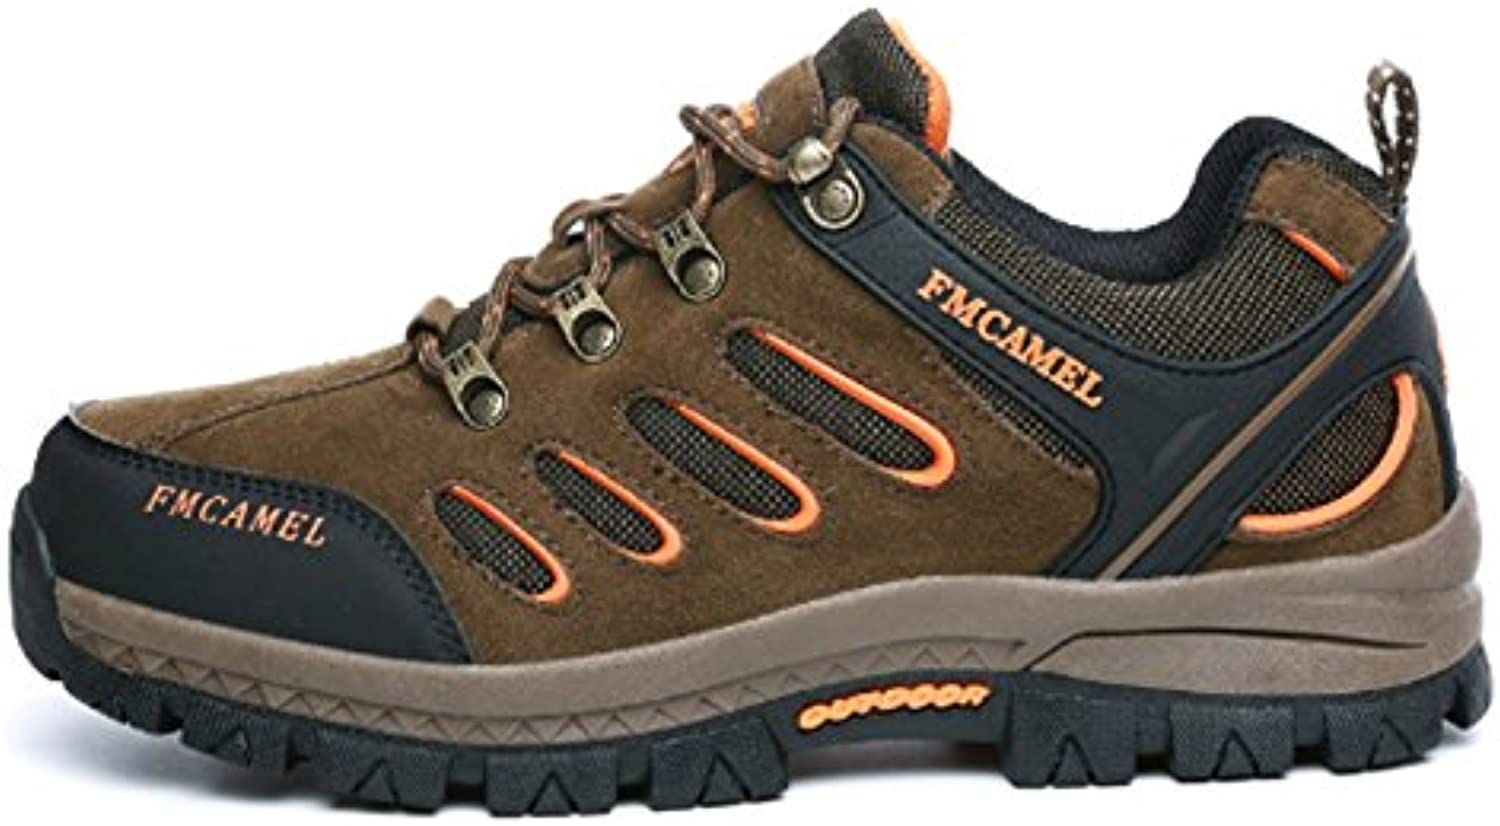 Scarpe running da uomo Low Trekking Walking Hiking Arrampicata Scarpe Leisure Travel Anti-skid Impermeabile Air... | Ordini Sono Benvenuti